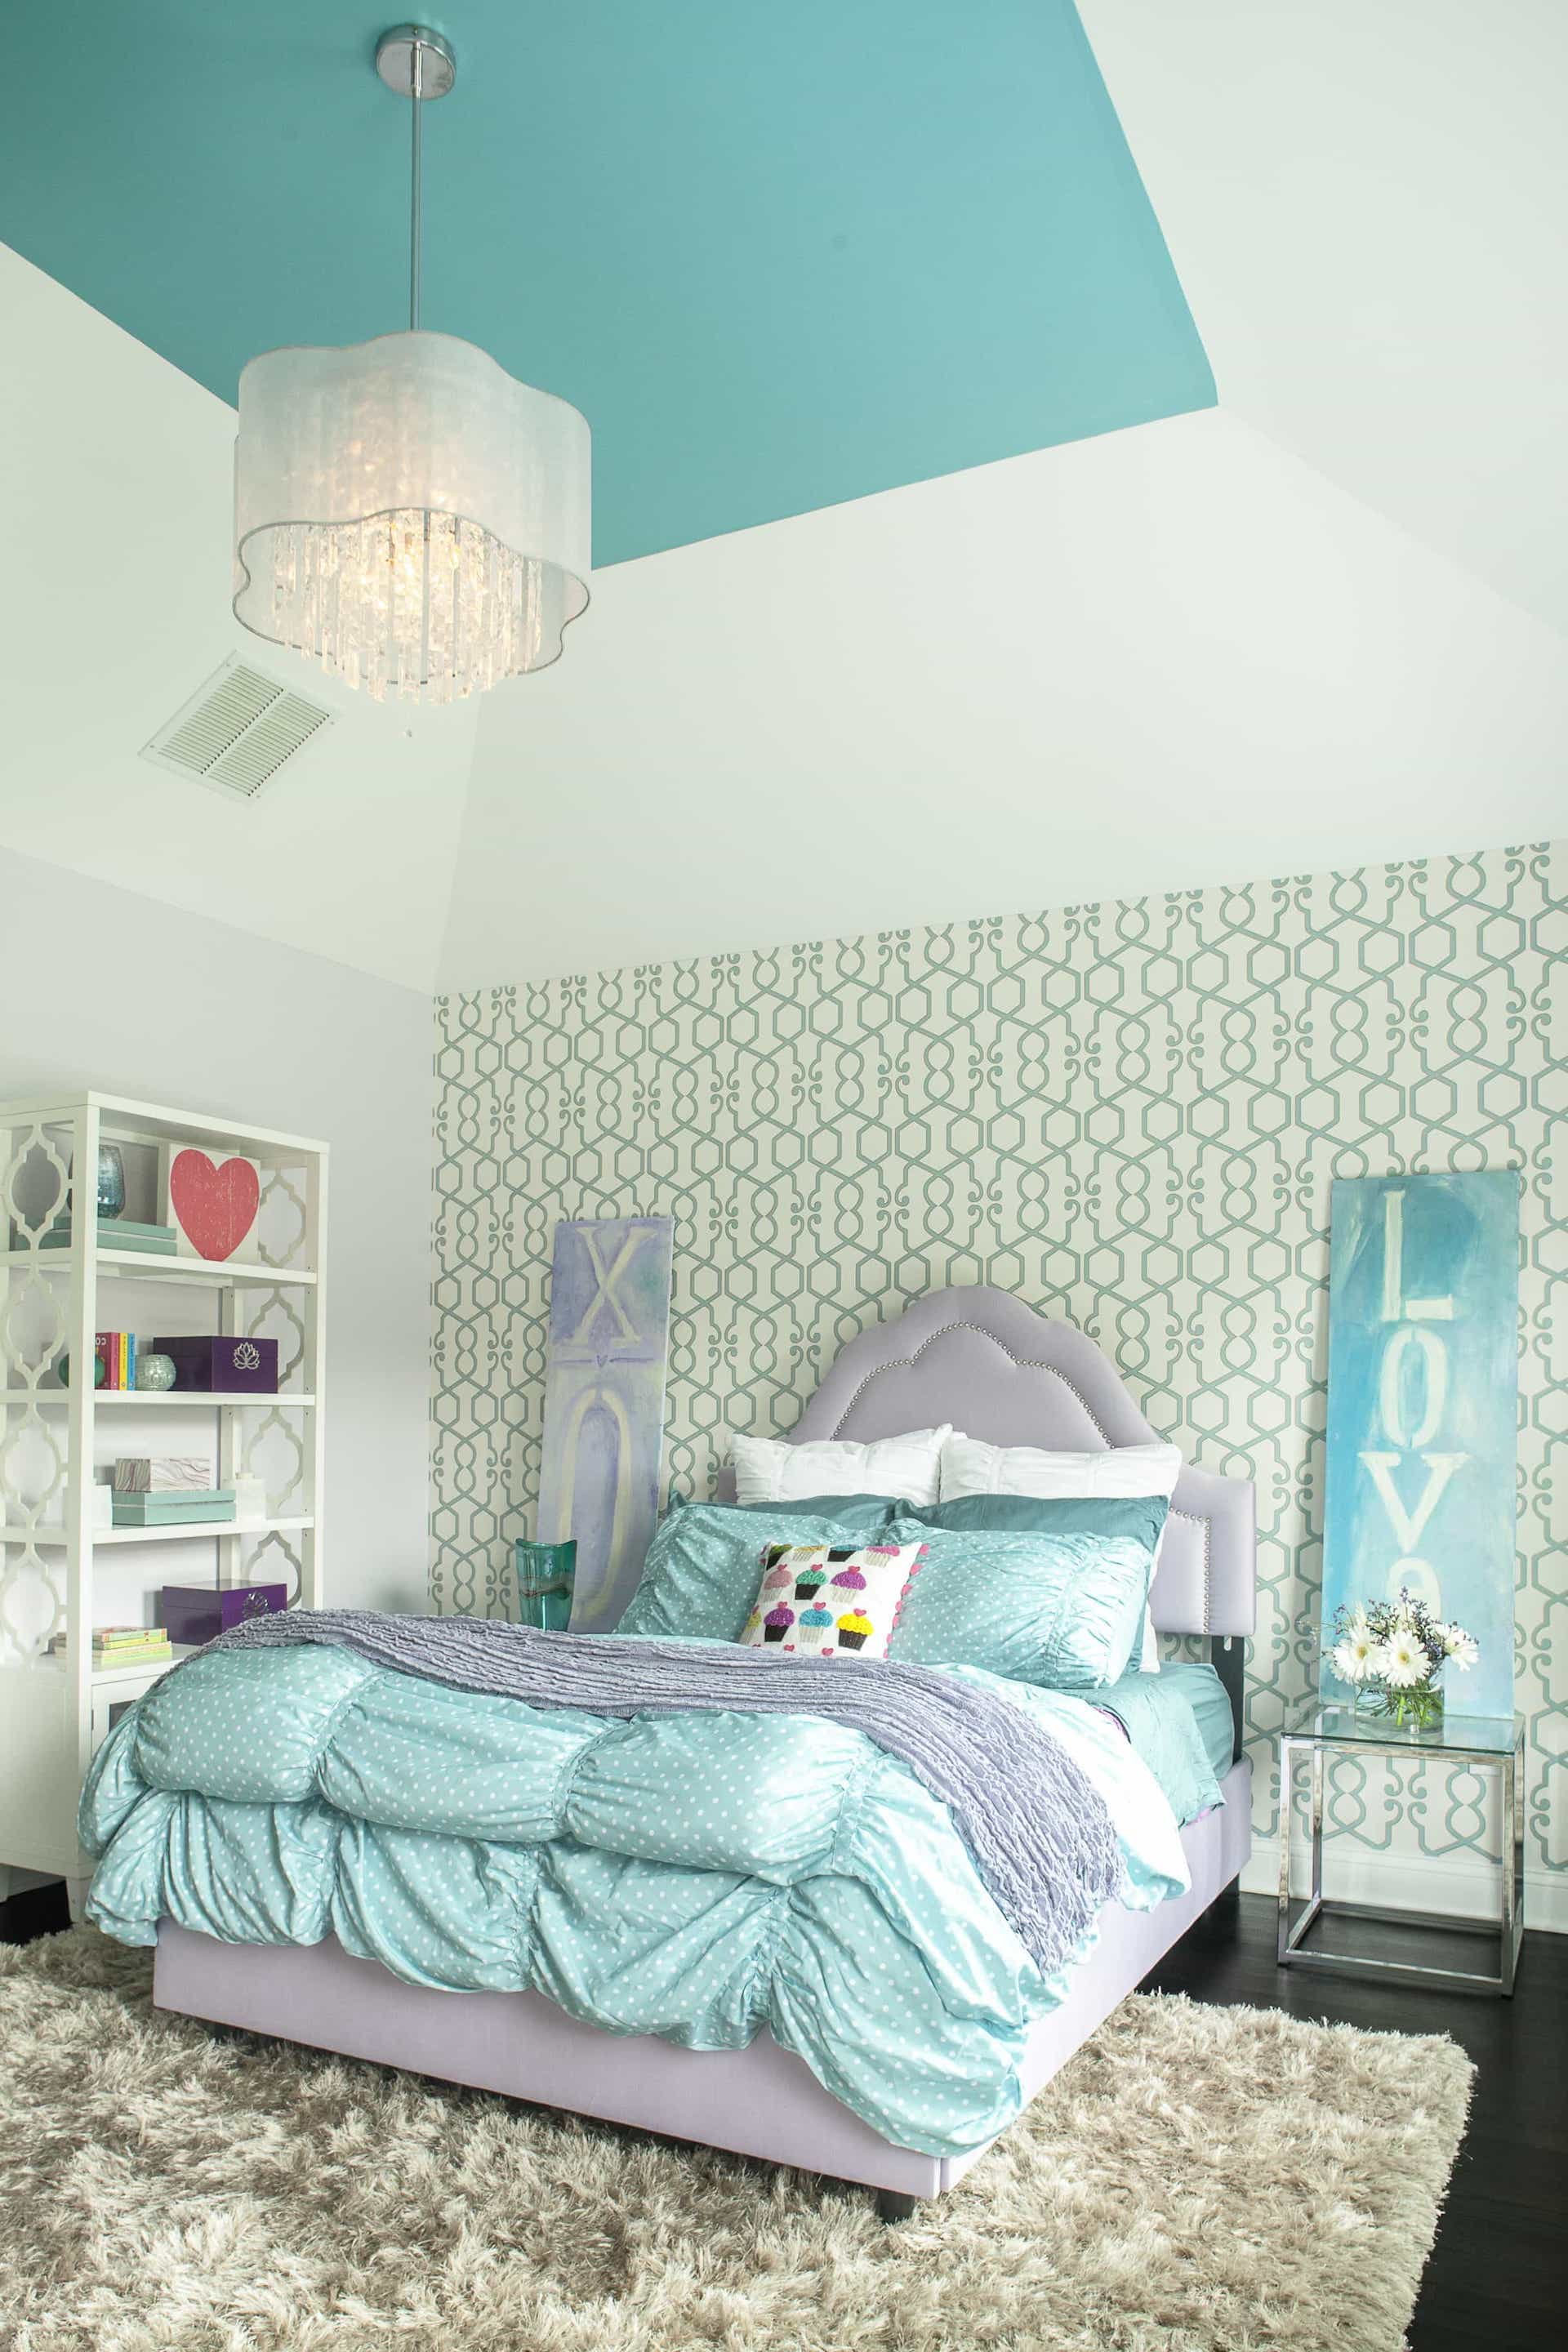 Glamorous Girls Bedroom With Flokati Rug And Patterned Accent Wall (Image 5 of 10)